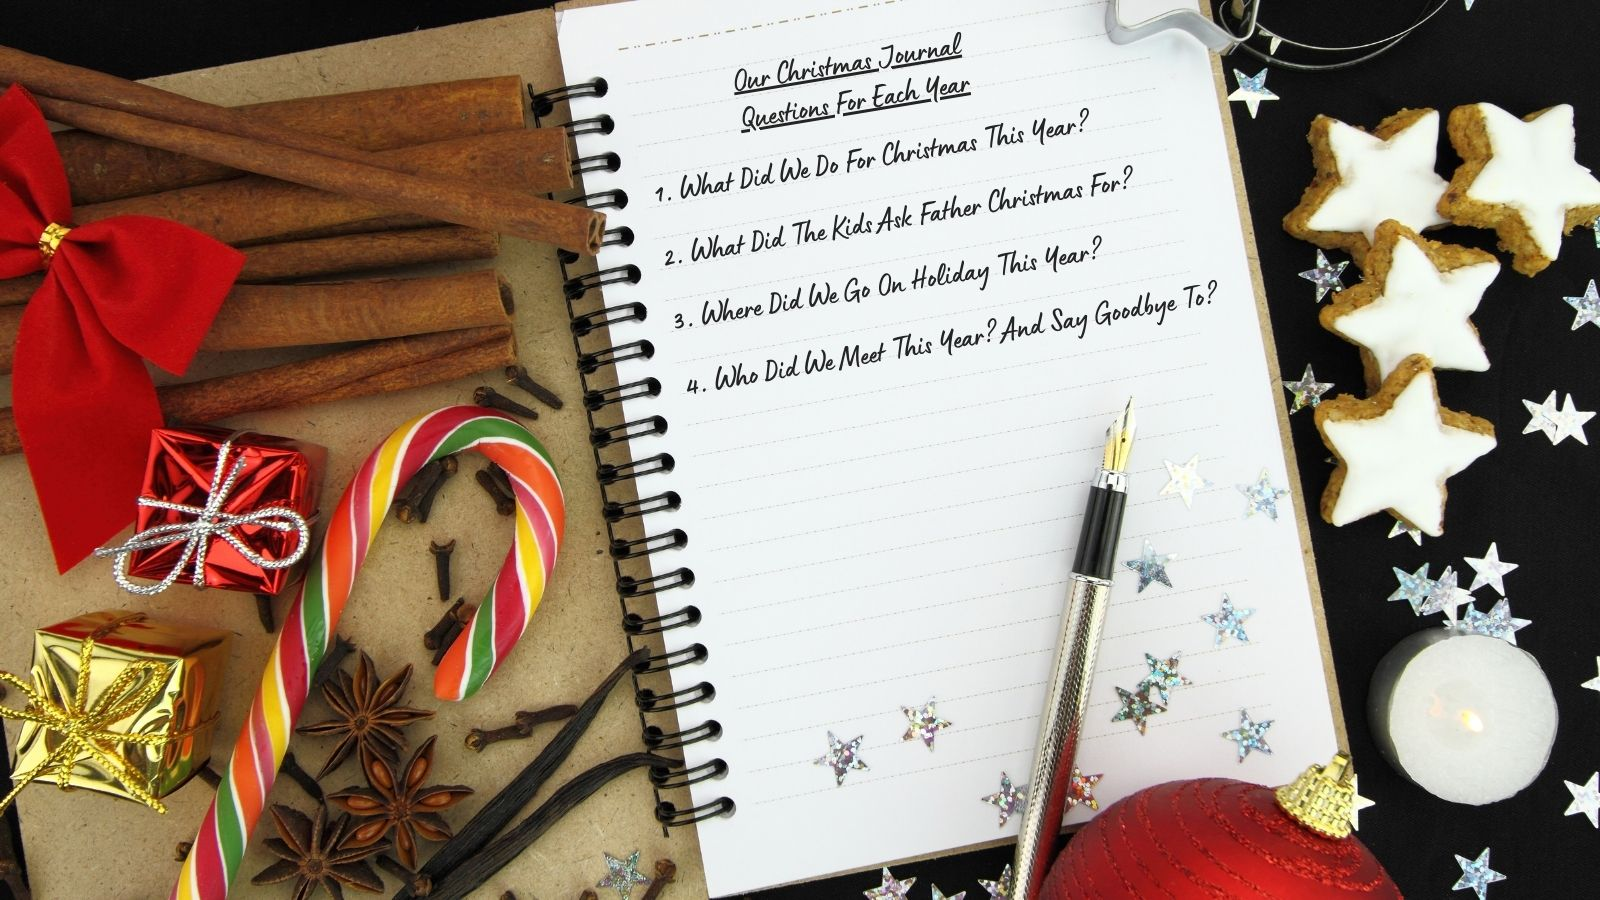 Journal Front Page with List of Christmas Questions